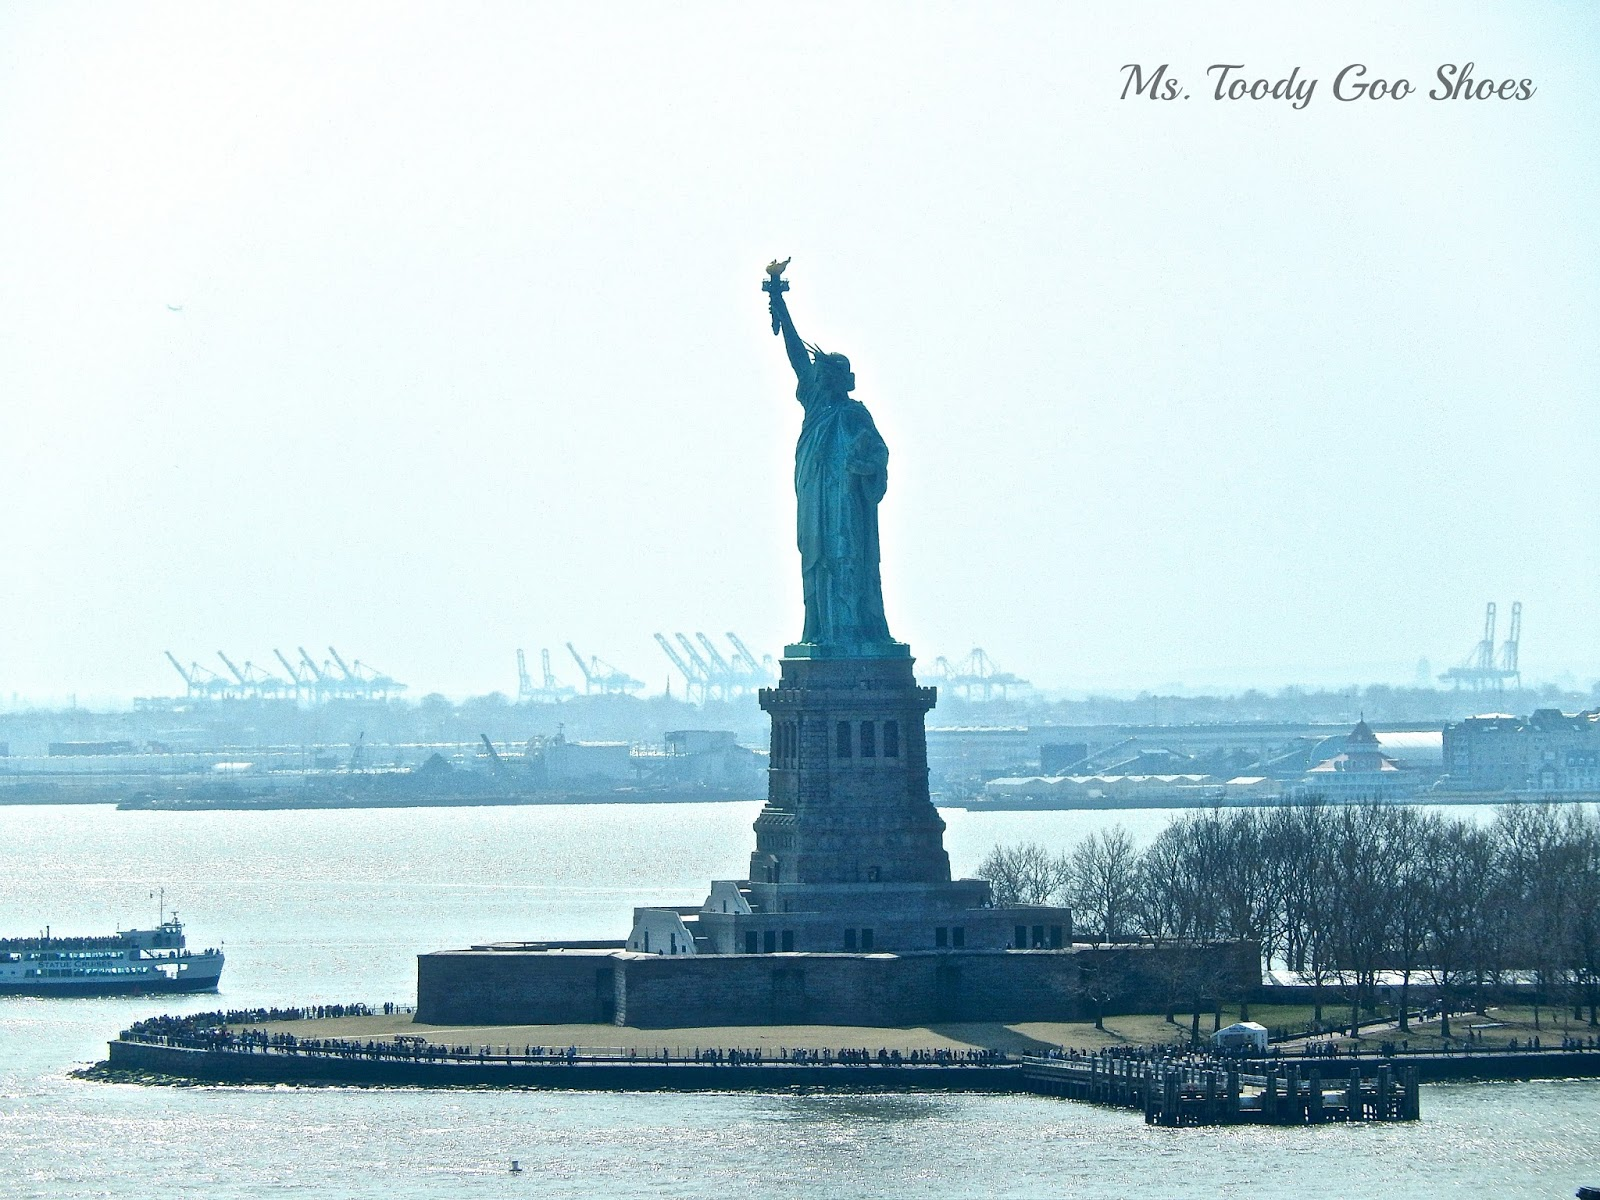 Statue of Liberty from Norwegian Breakaway Cruise Ship  --- Ms. Toody Goo Shoes